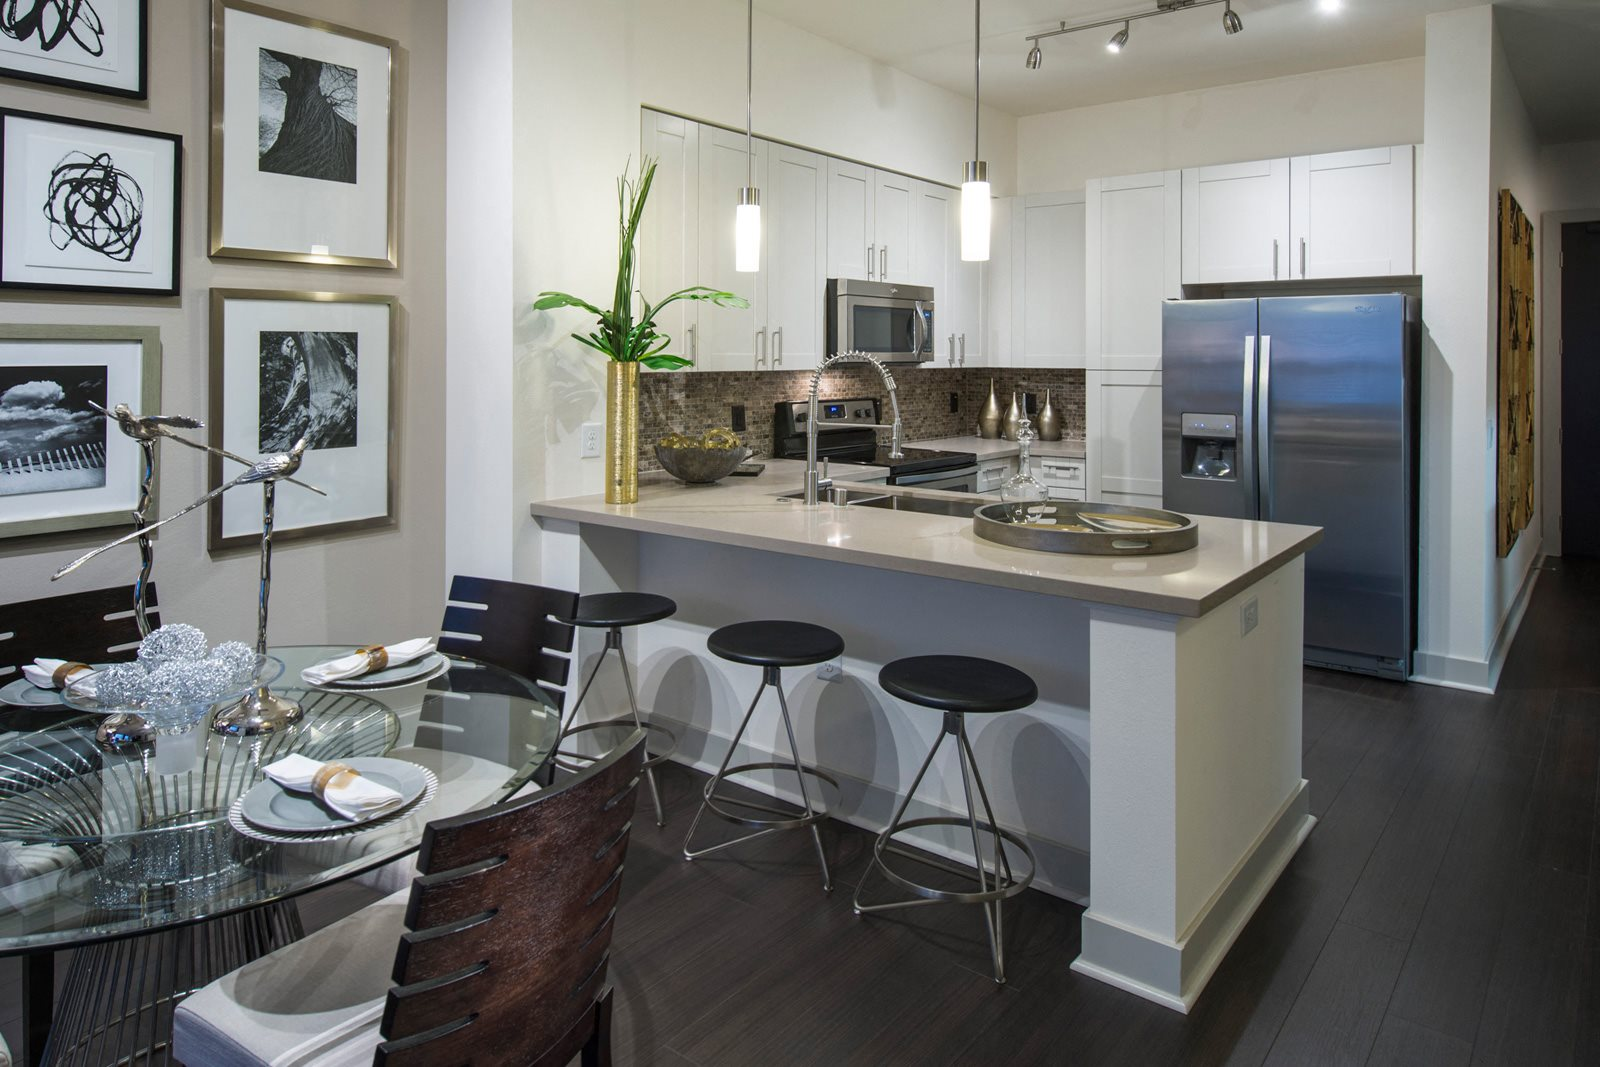 Gourmet Kitchens with Stainless Steel Appliances at Olympic by Windsor, 936 S. Olive St, CA